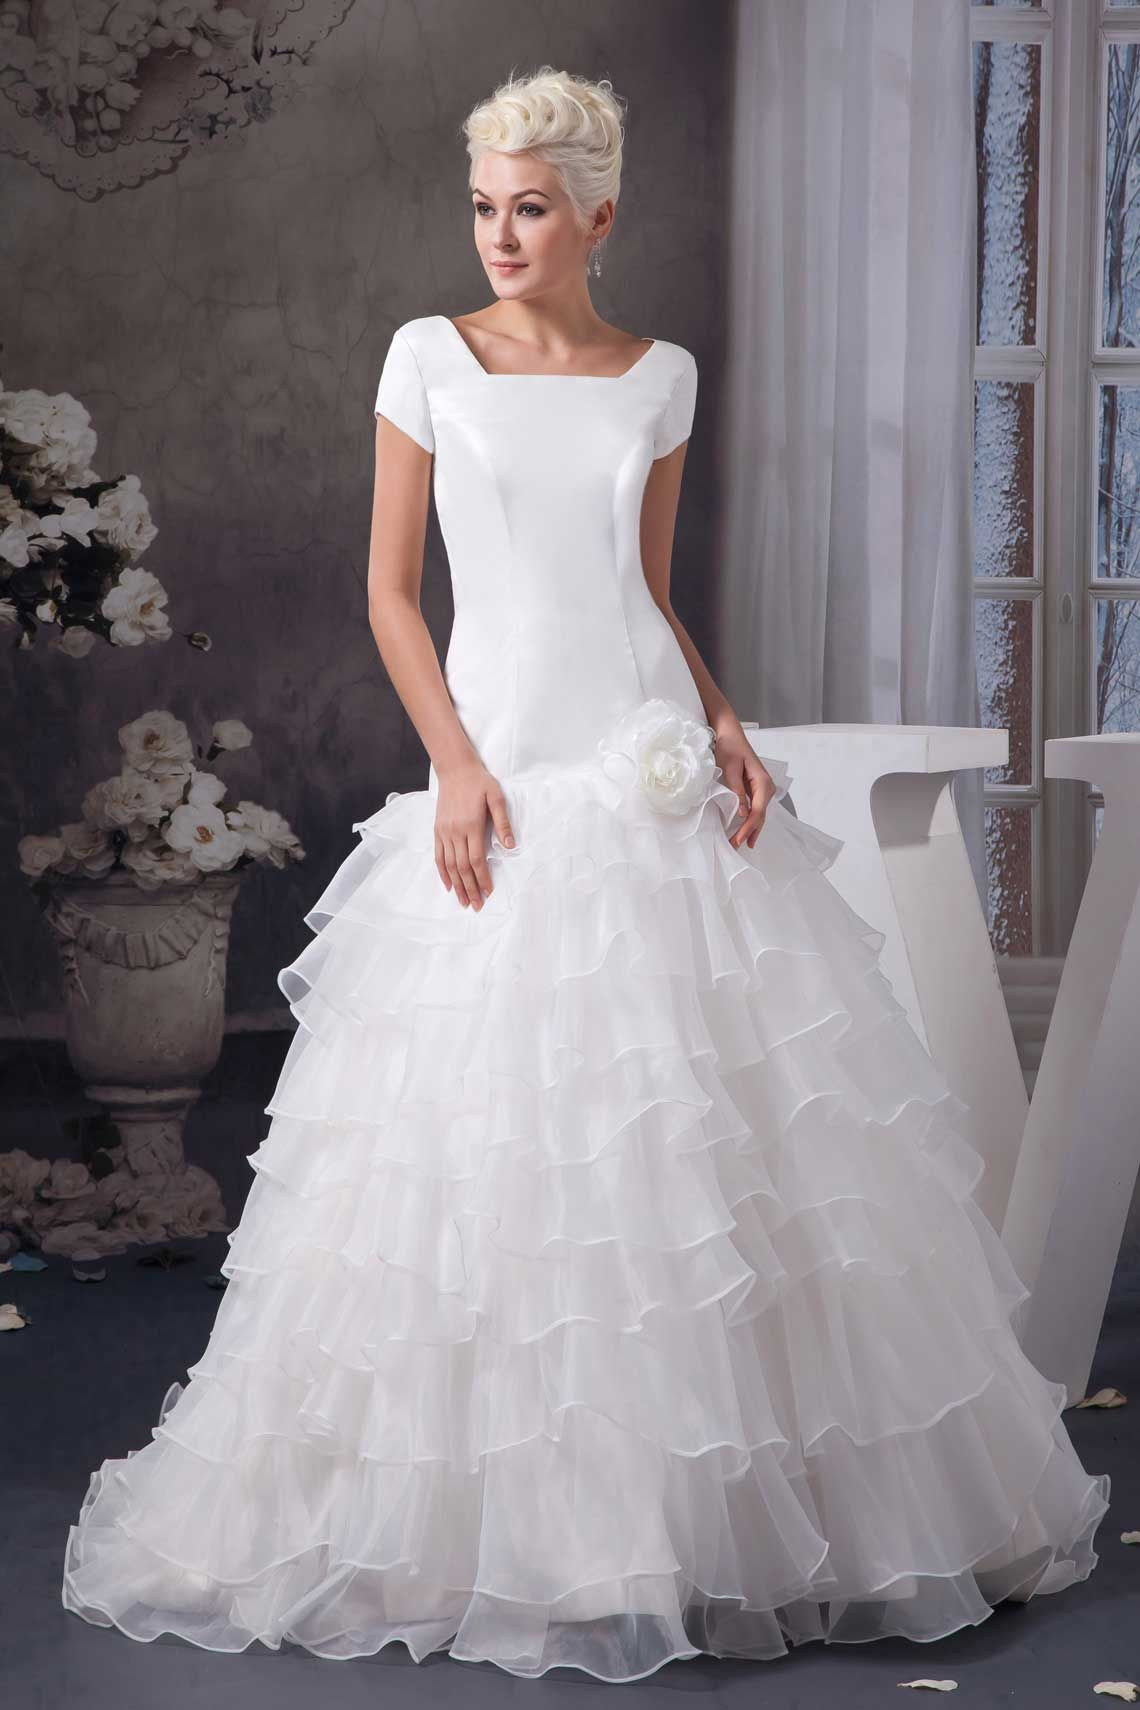 c91b8f23a0a sleeveless white zipper square dropped waist flowers tier wedding dress -  Whoboxdress.com